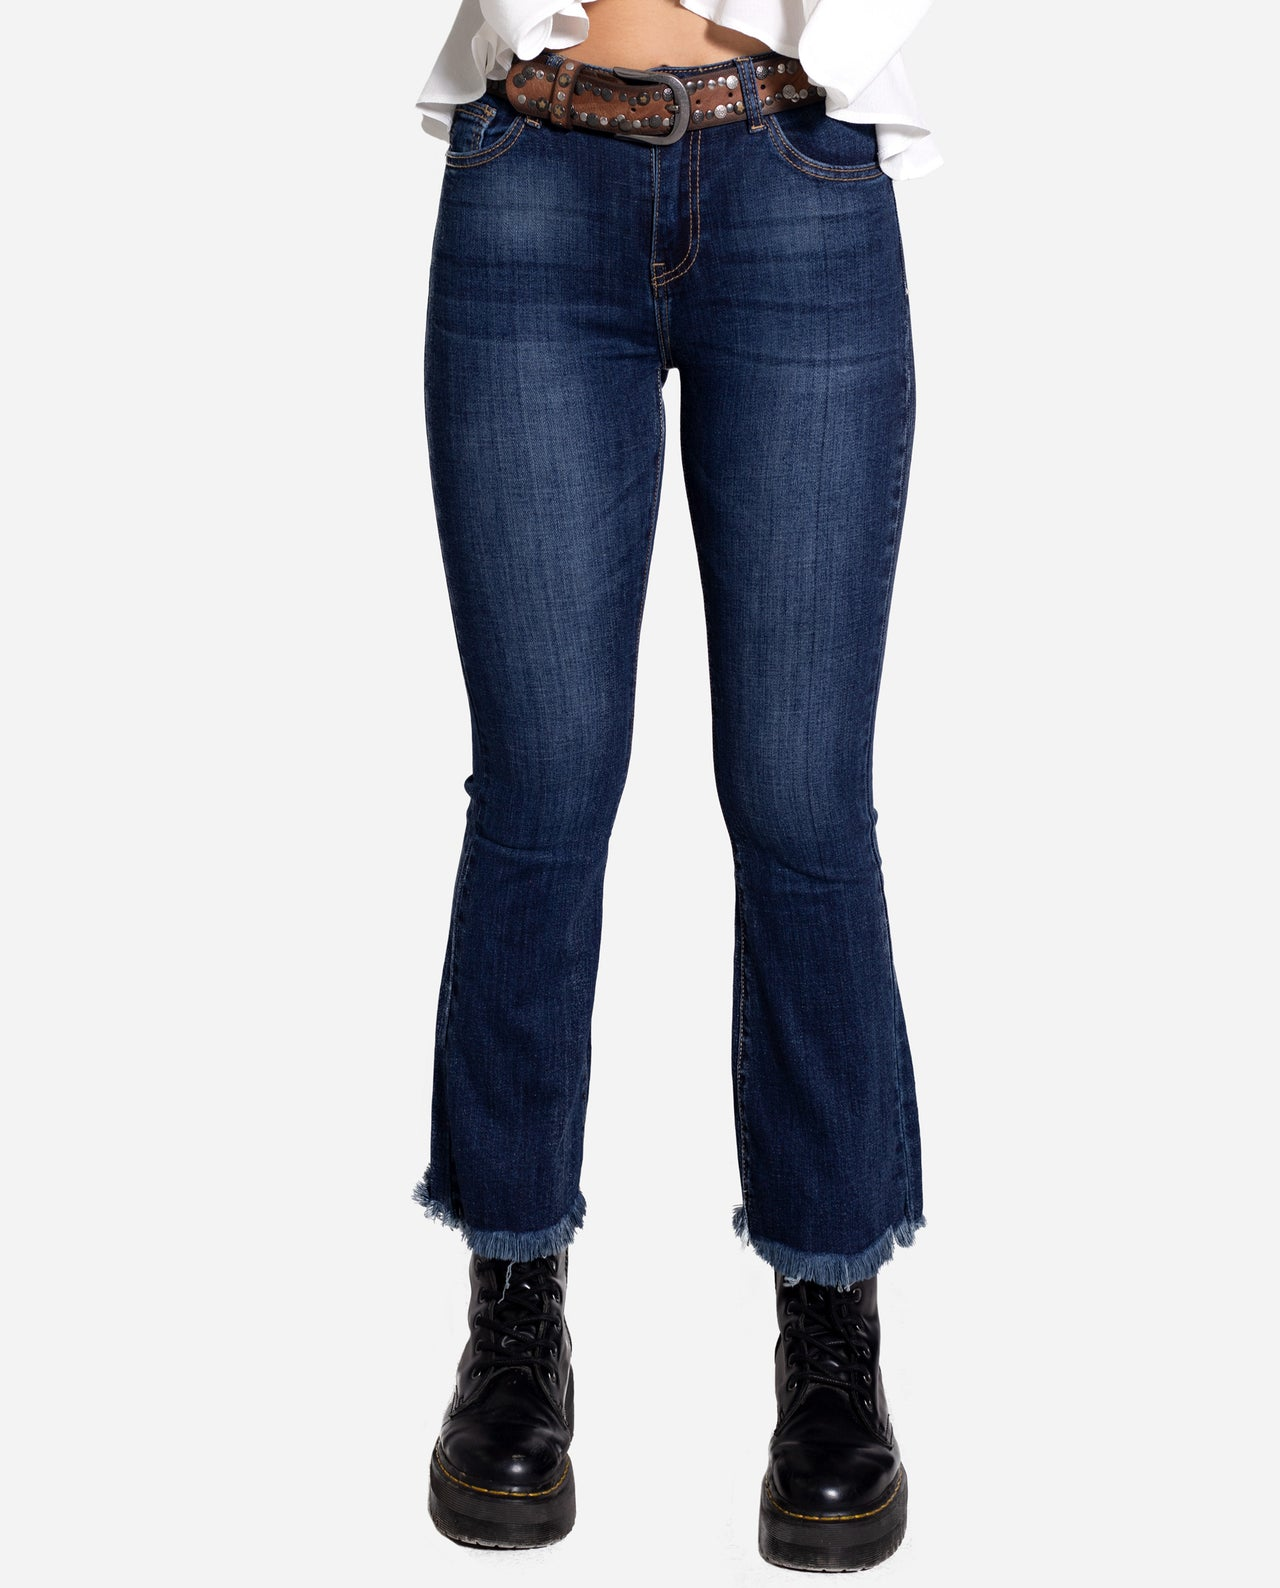 Blue Cowboy Flare Of Unhilly Woman Jeans Flare Blues The Are